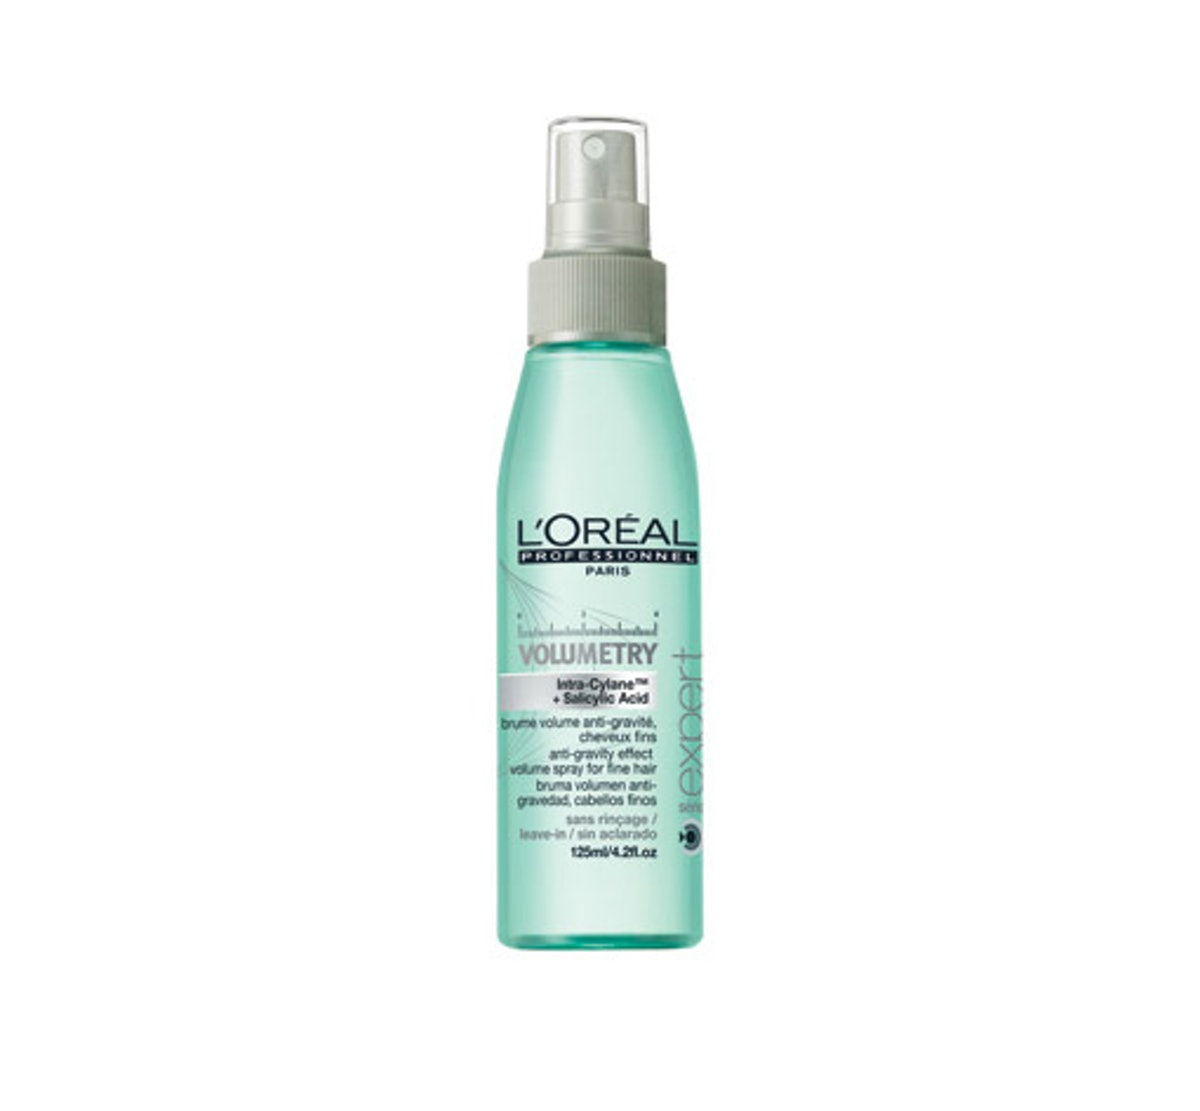 products-for-natural-hair-look-05